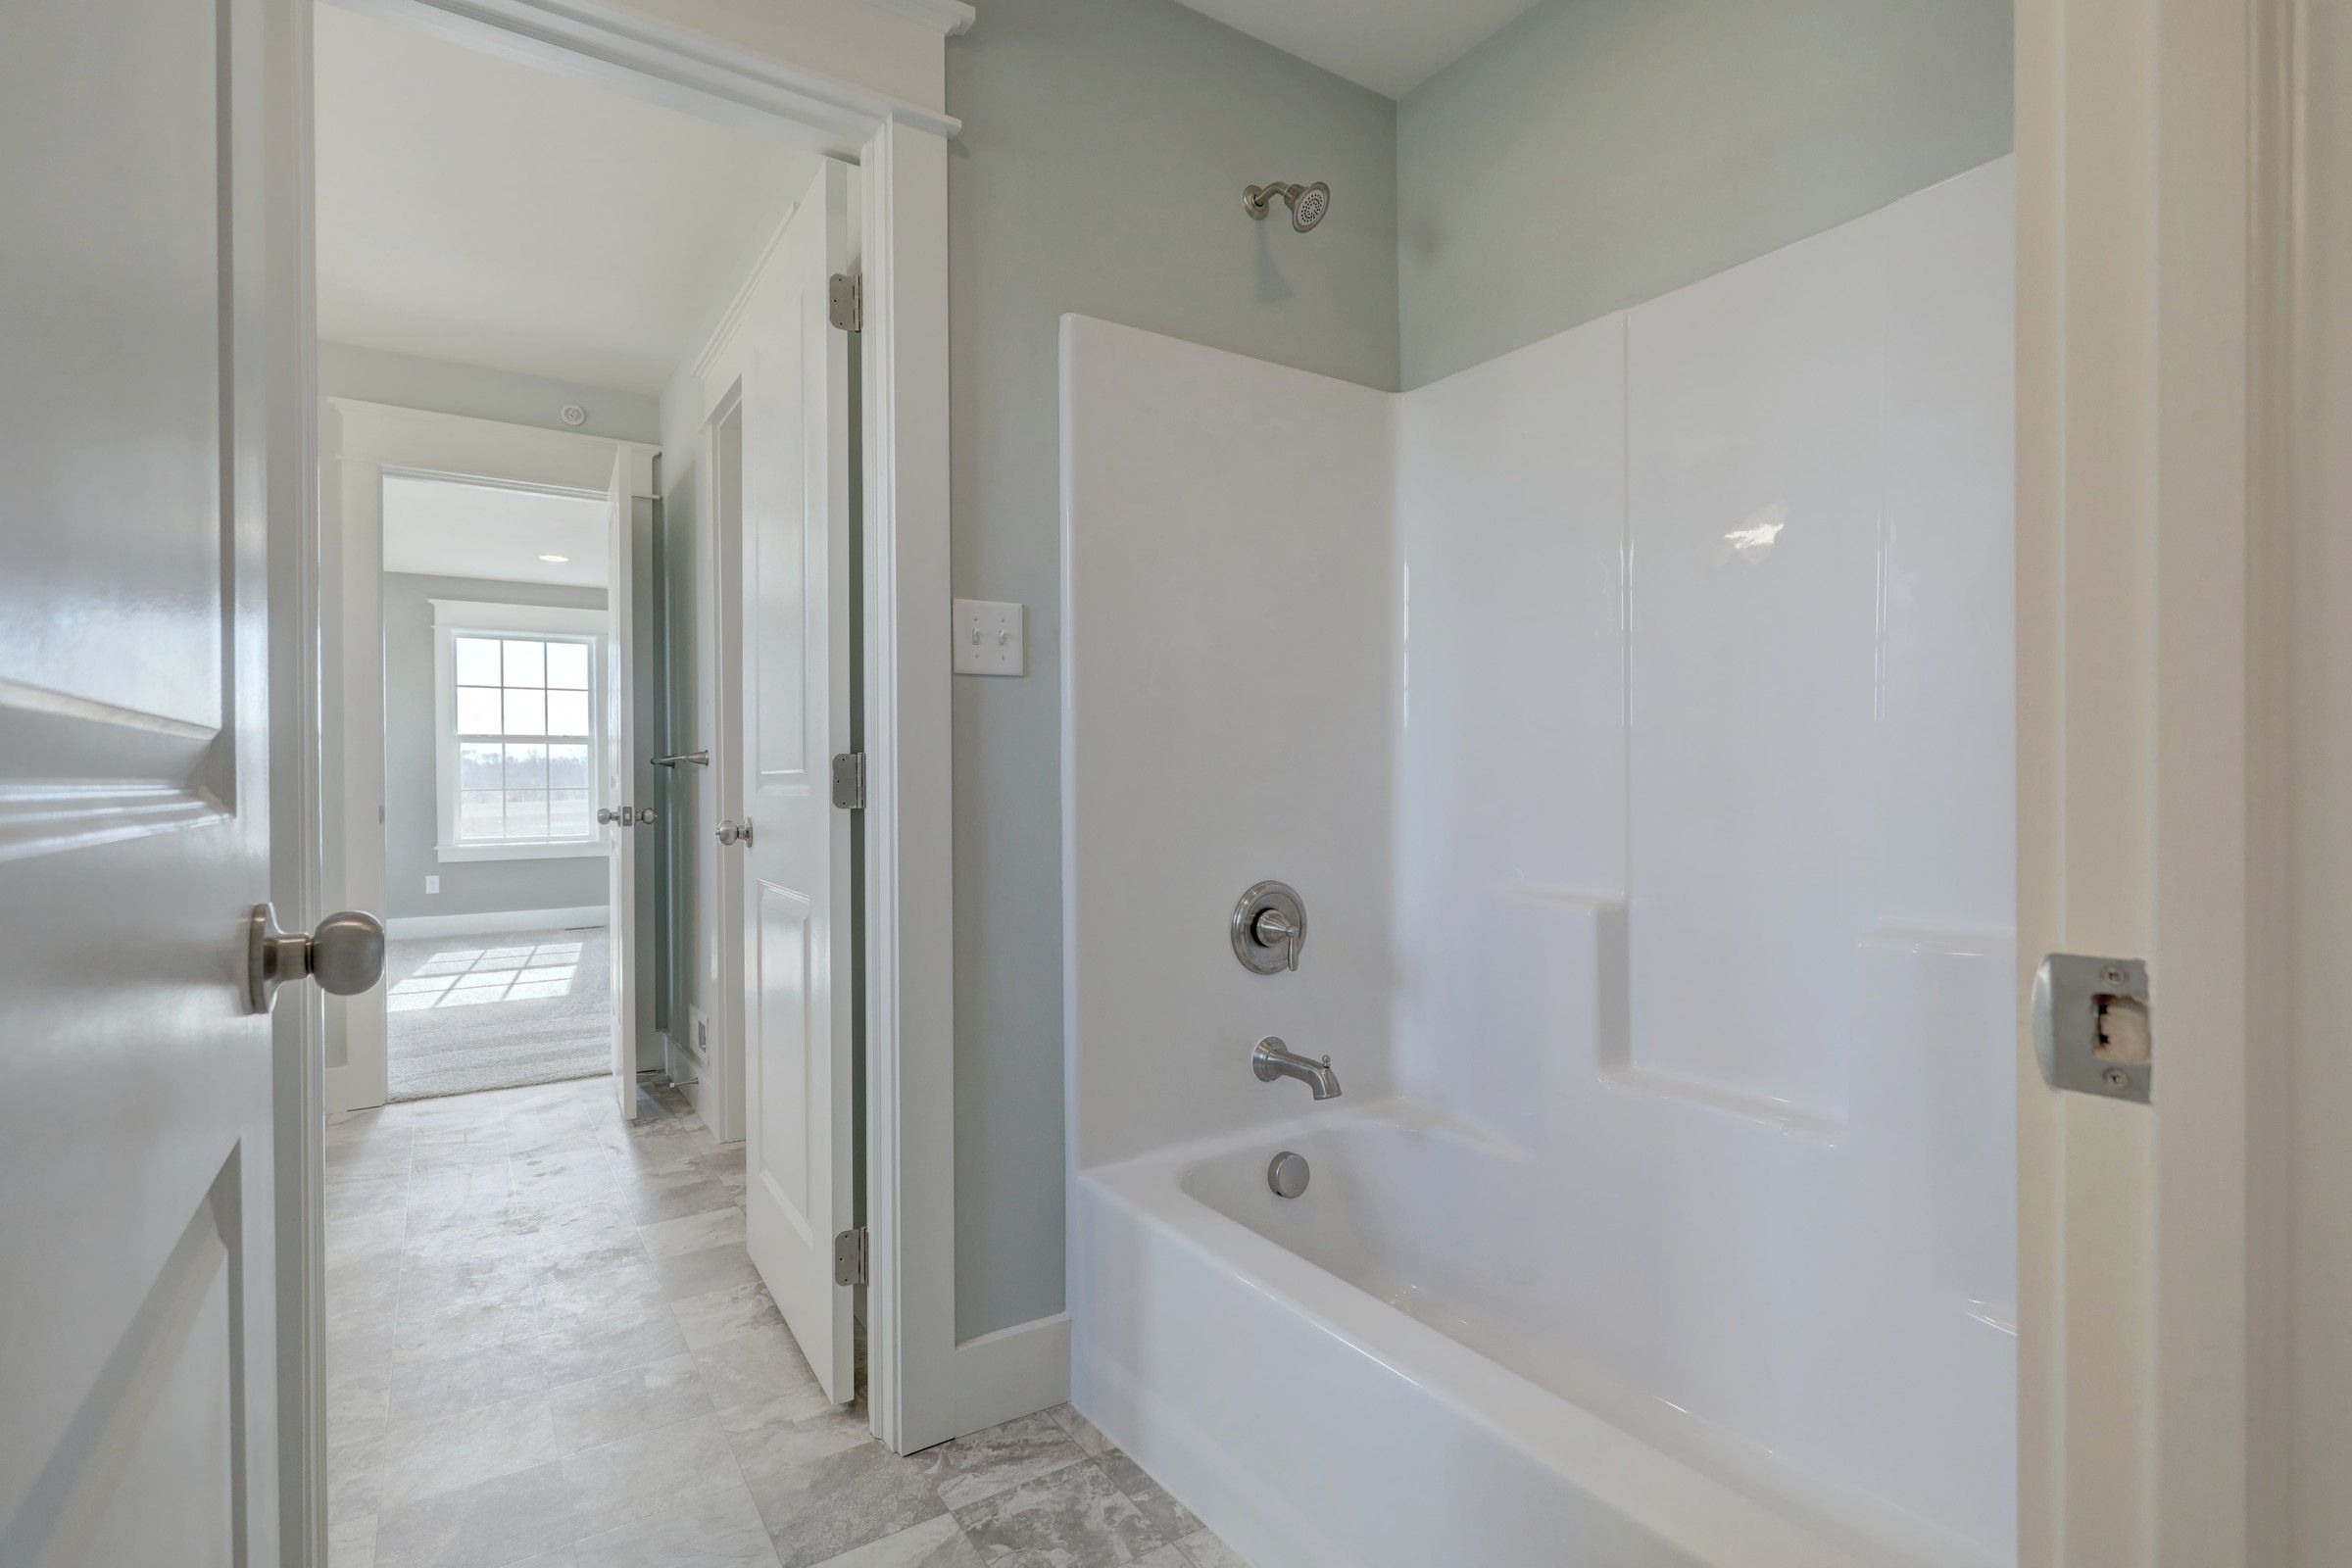 Bathroom featured in the Ethan English Cottage By Keystone Custom Homes in York, PA